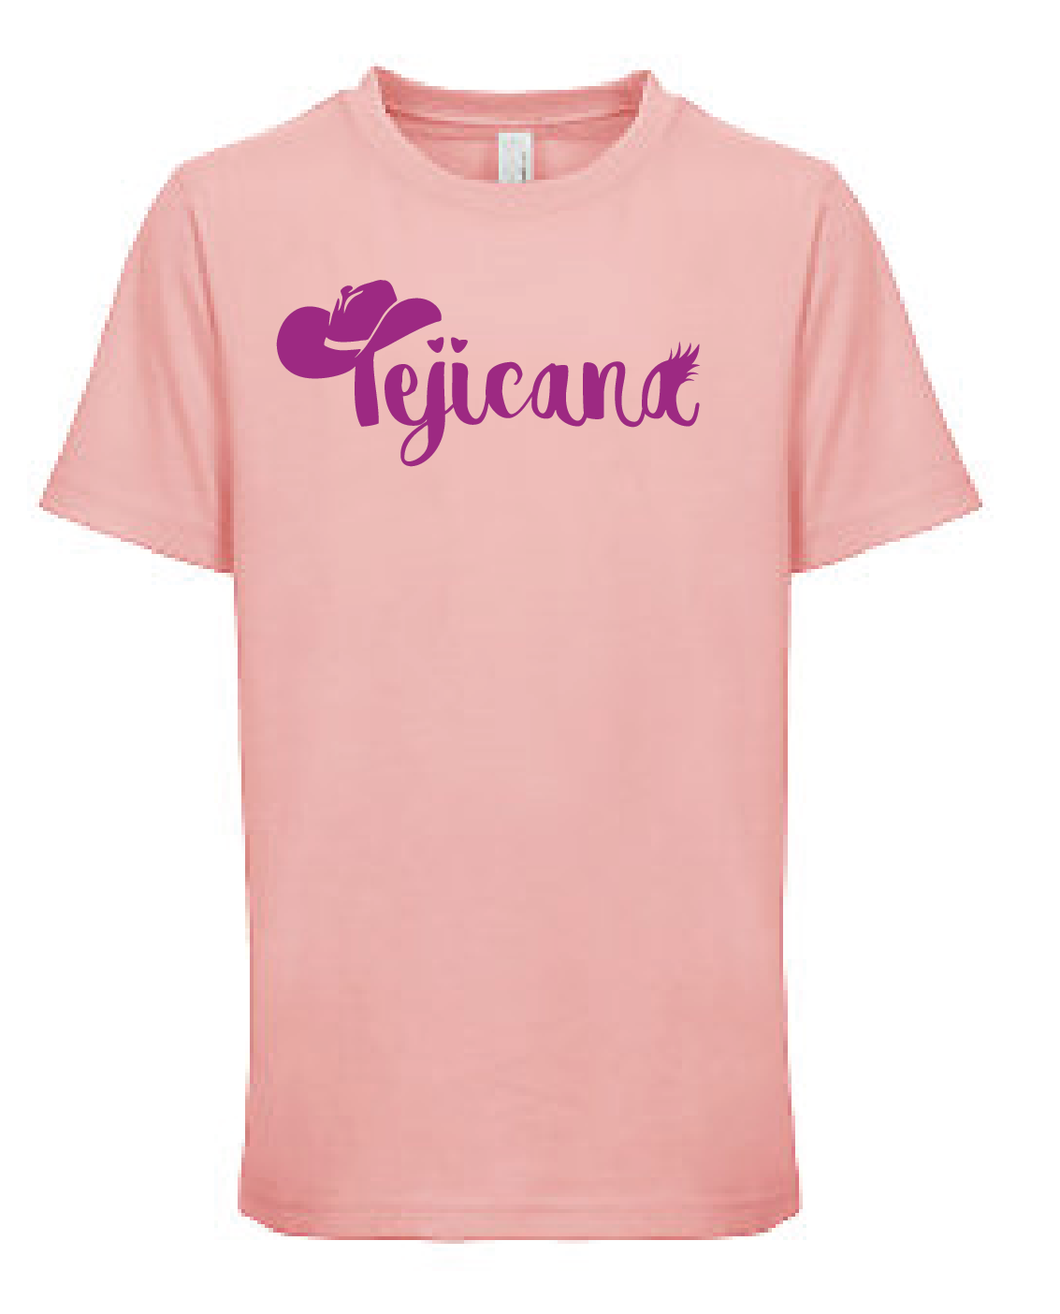 Tejicanitas: Youth Tee